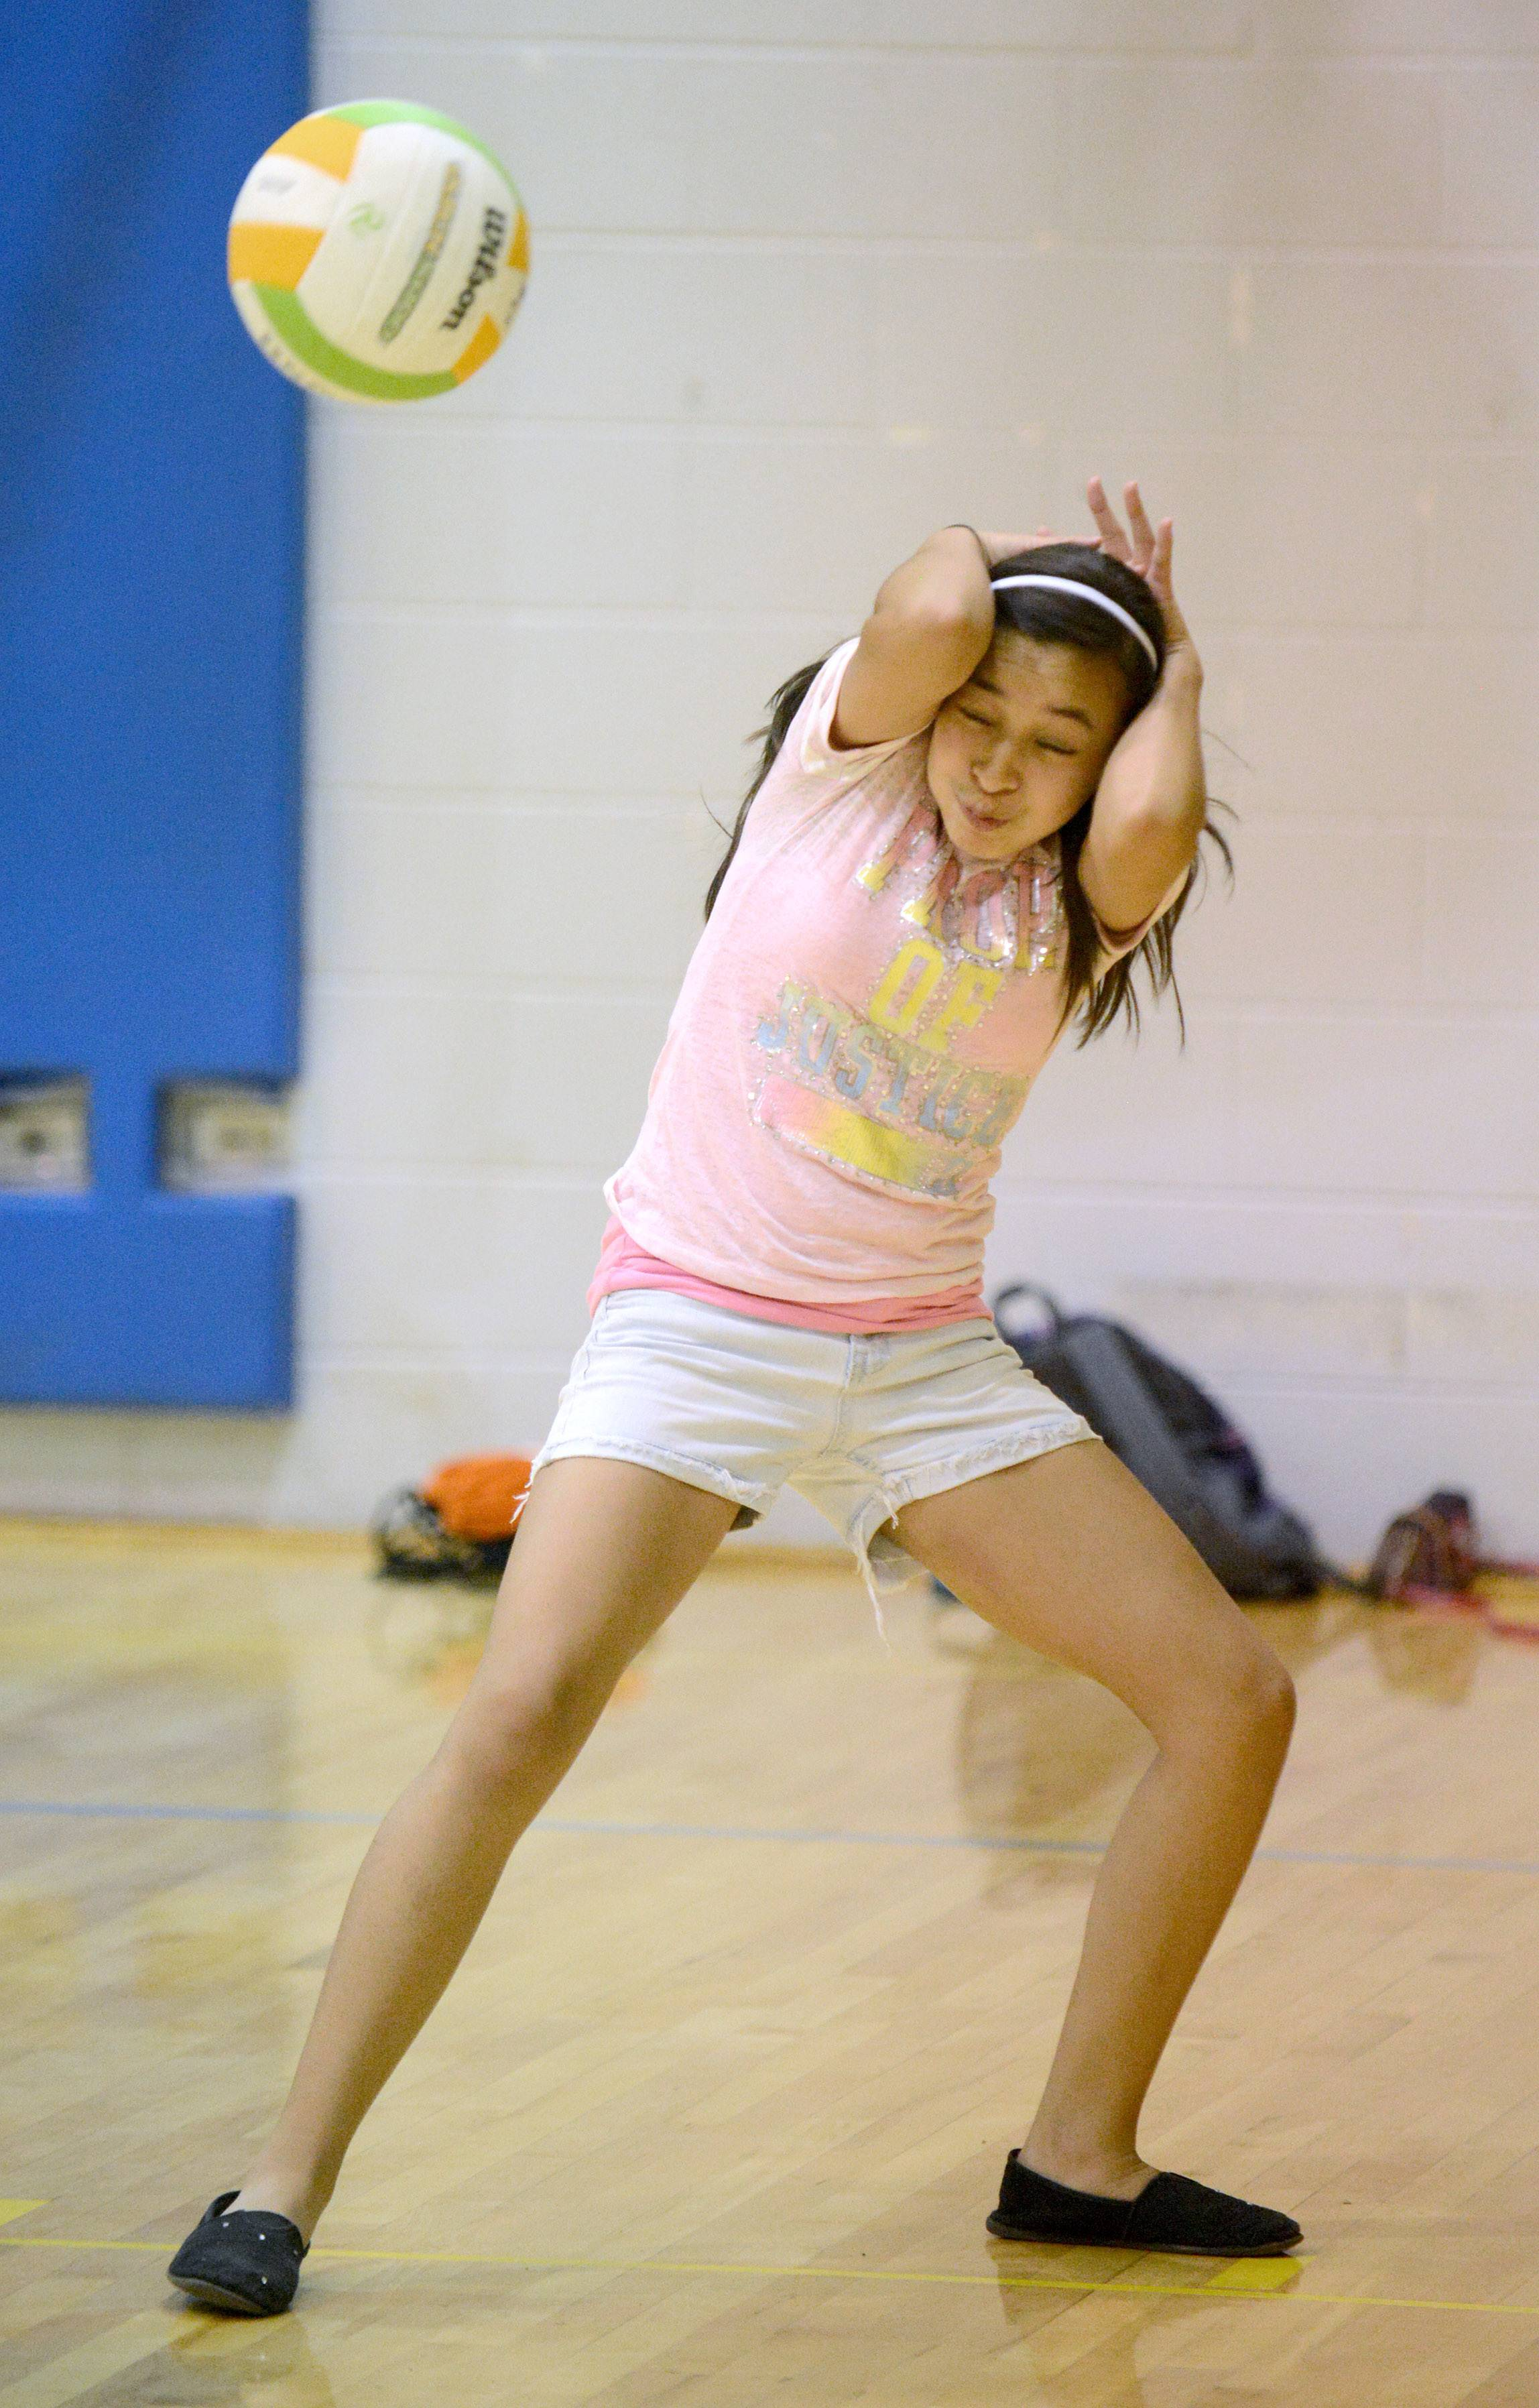 Natalie Munoz, 13, ducks while playing volleyball Tuesday at the Elgin Police Department's Kids United program at Abbott Middle School in Elgin.